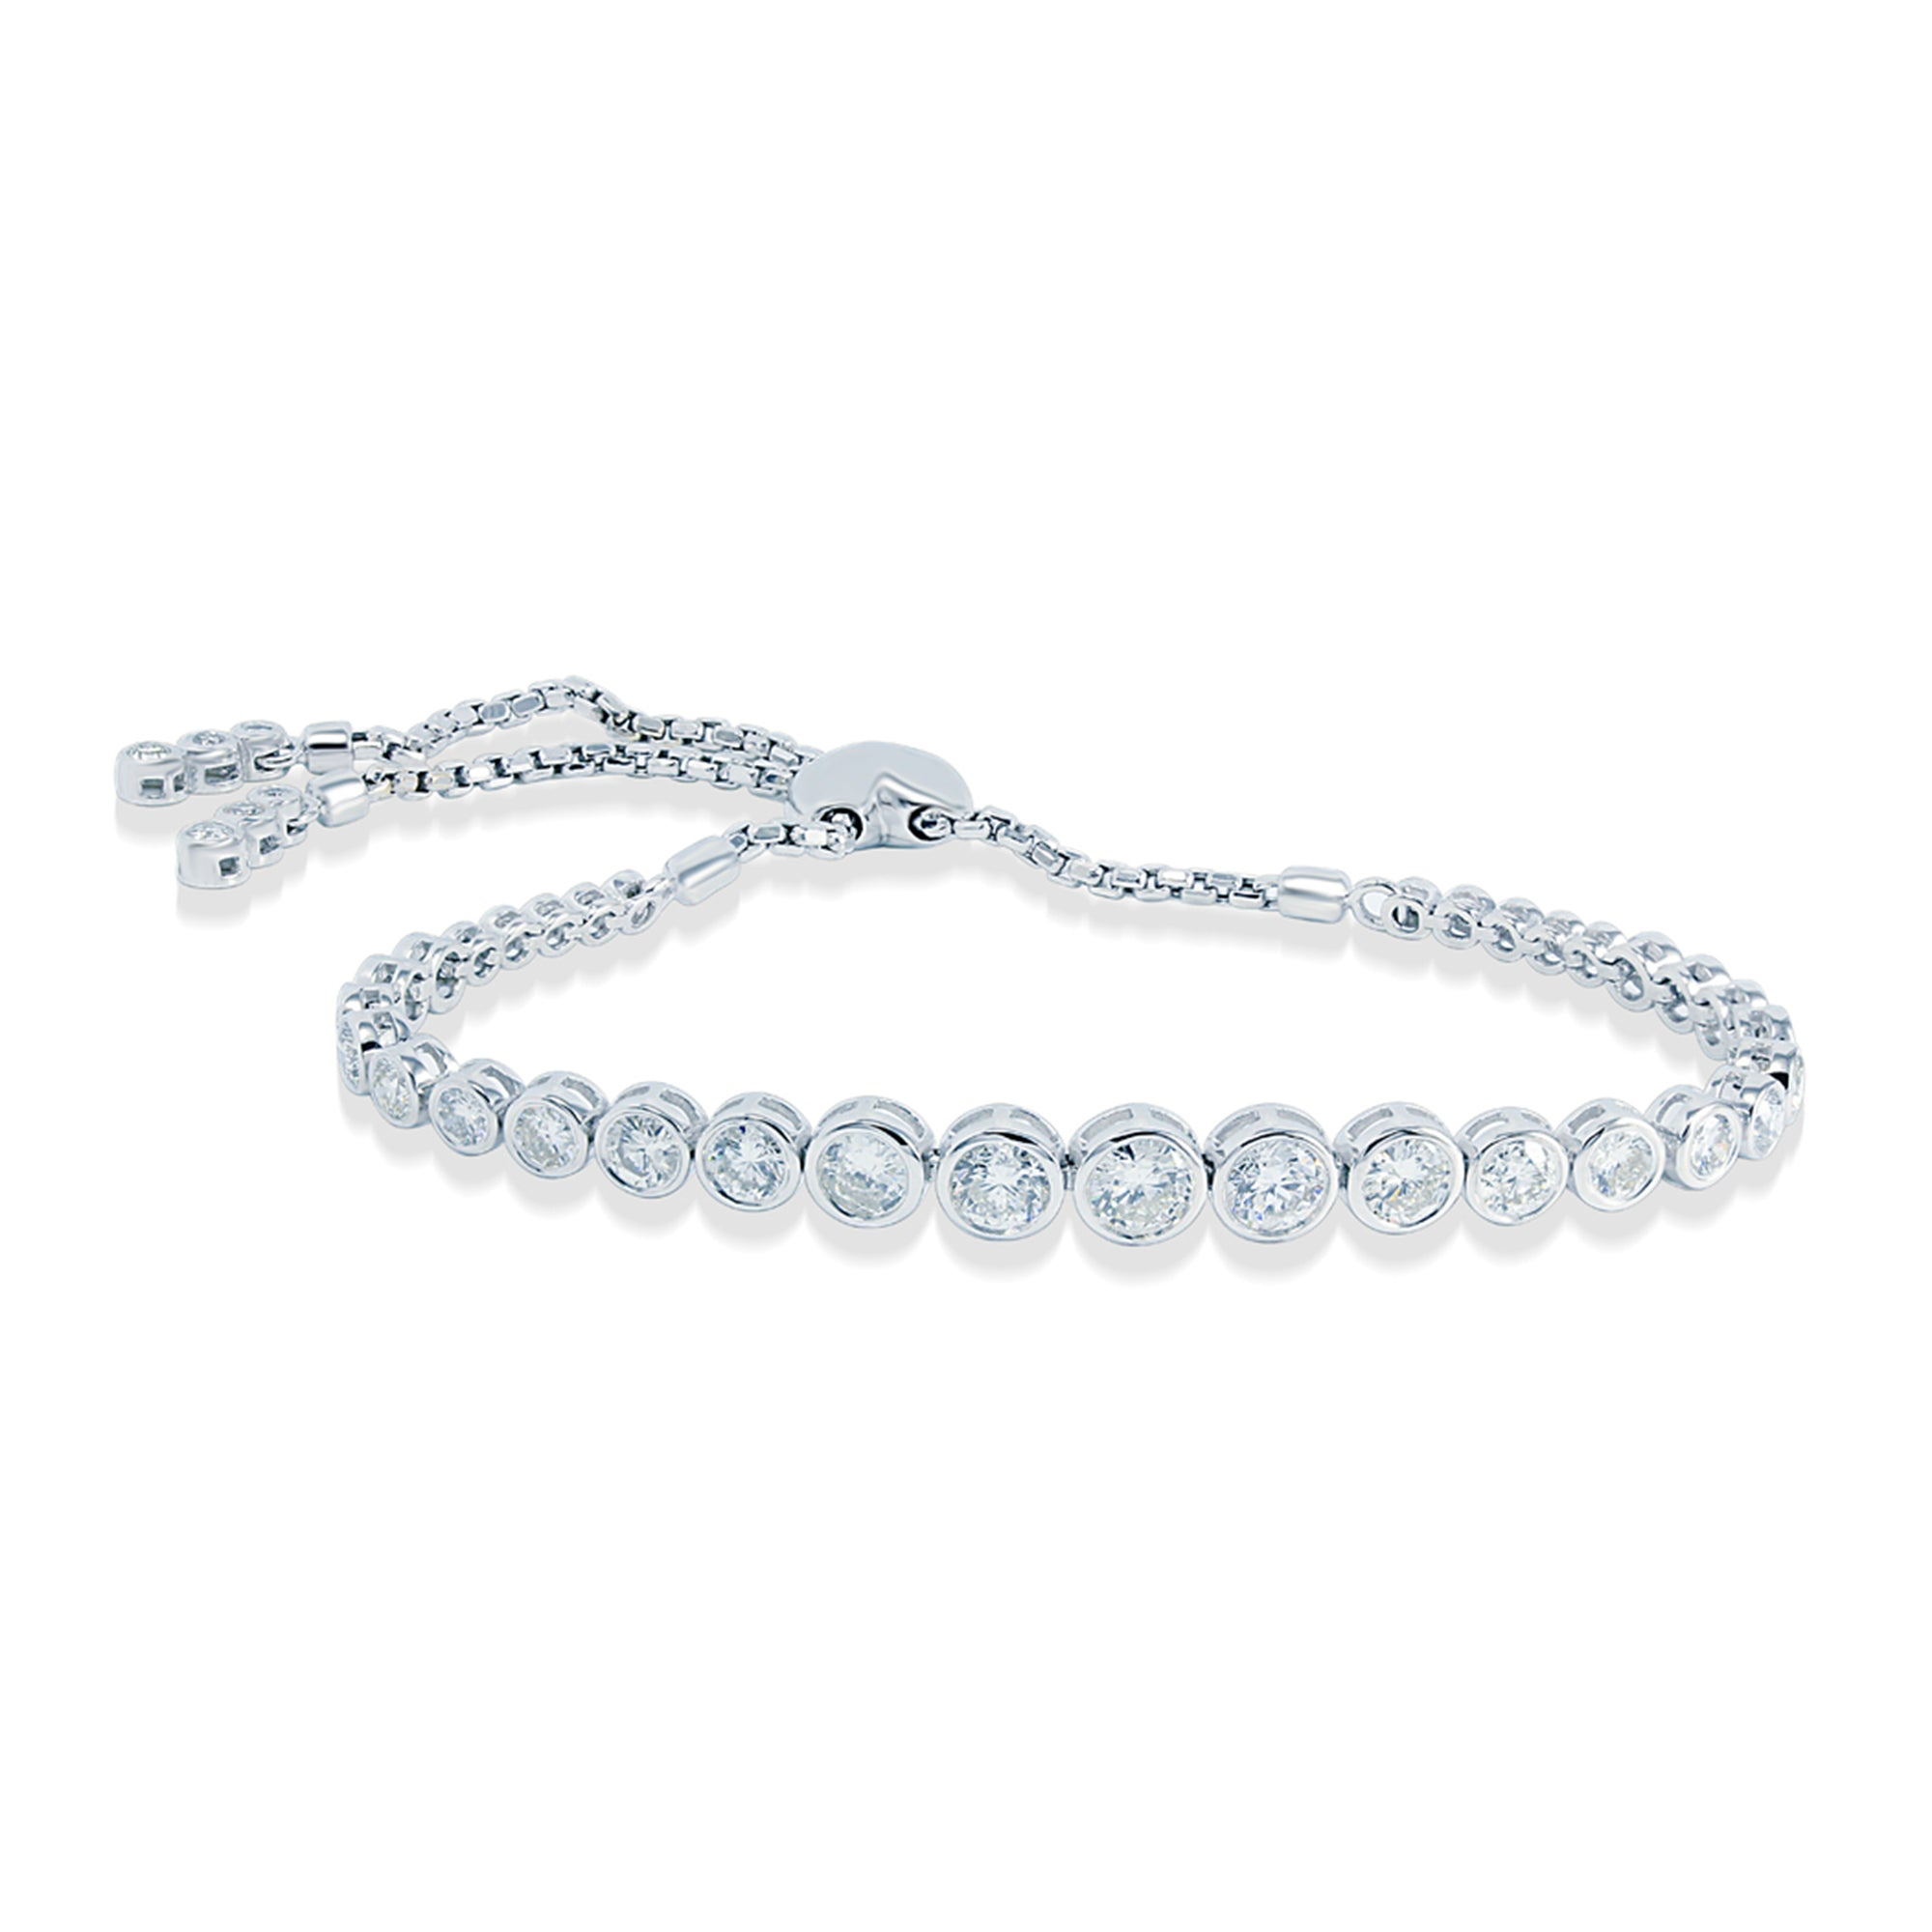 Diamond Bolo Bracelet in 14k White Gold, 3.13 Total Carat Weight - Talisman Collection Fine Jewelers